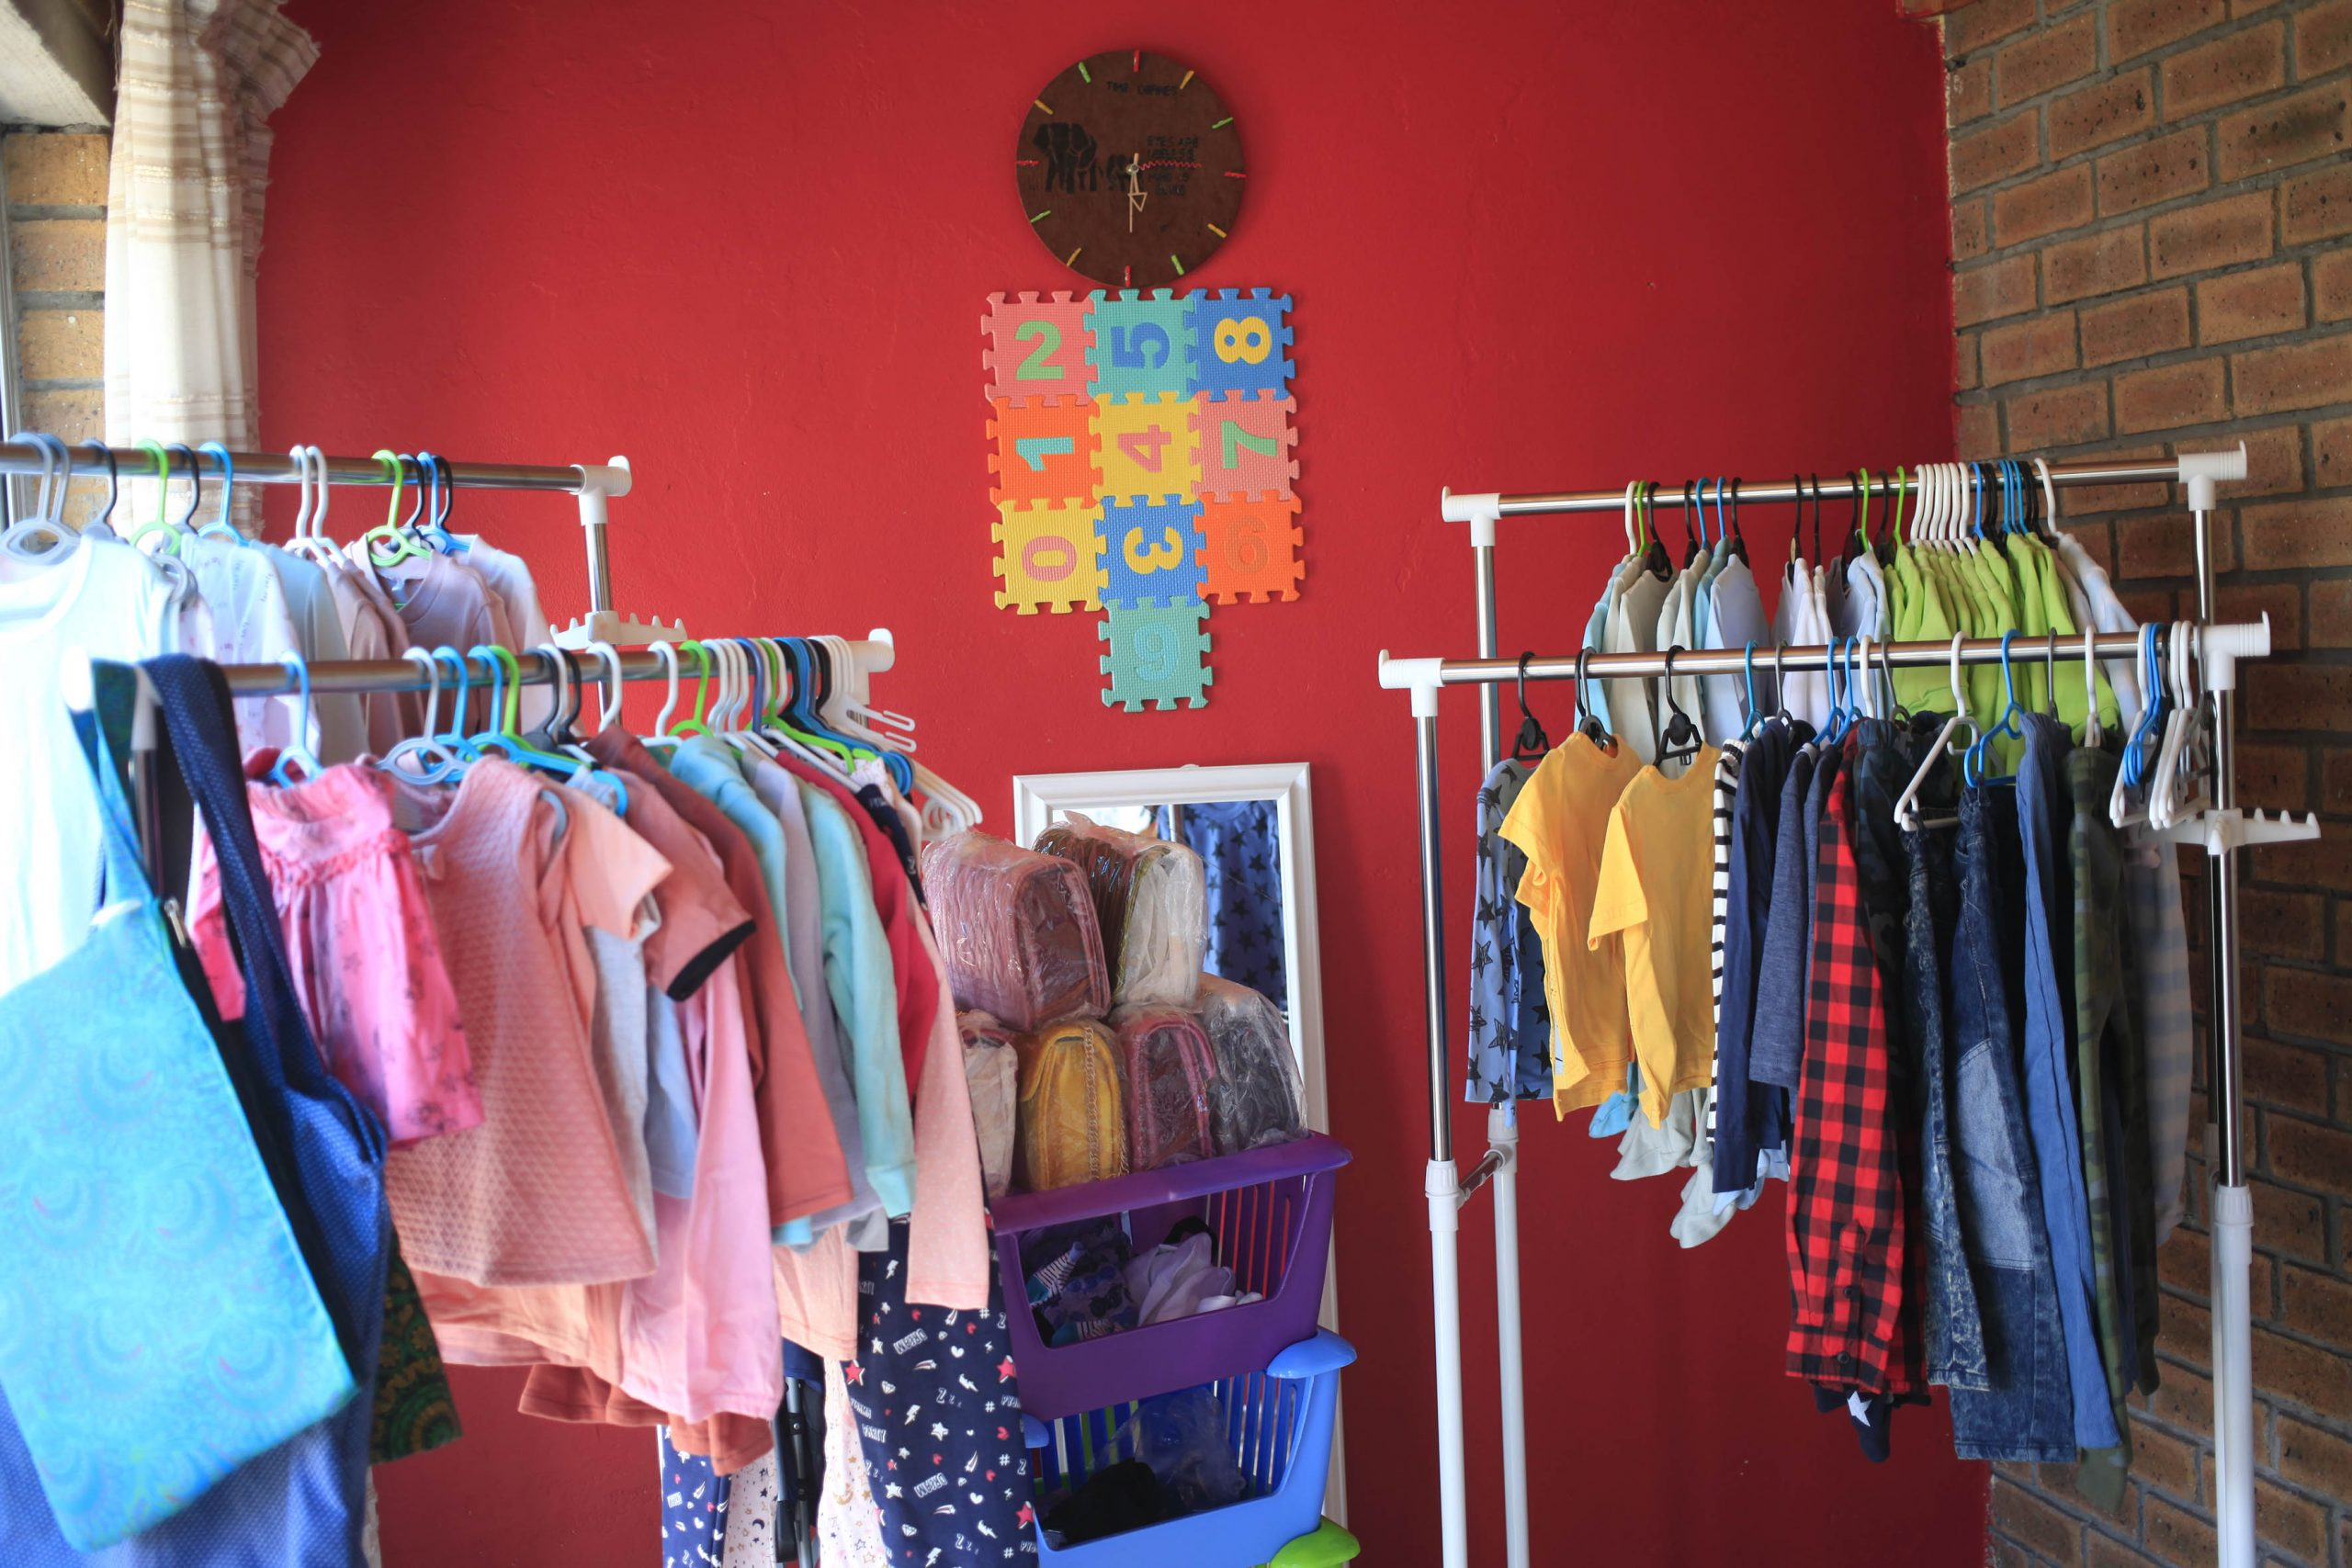 3 February 2020: Baby Friendly hires out some of the merchandise that children grow out of quickly.